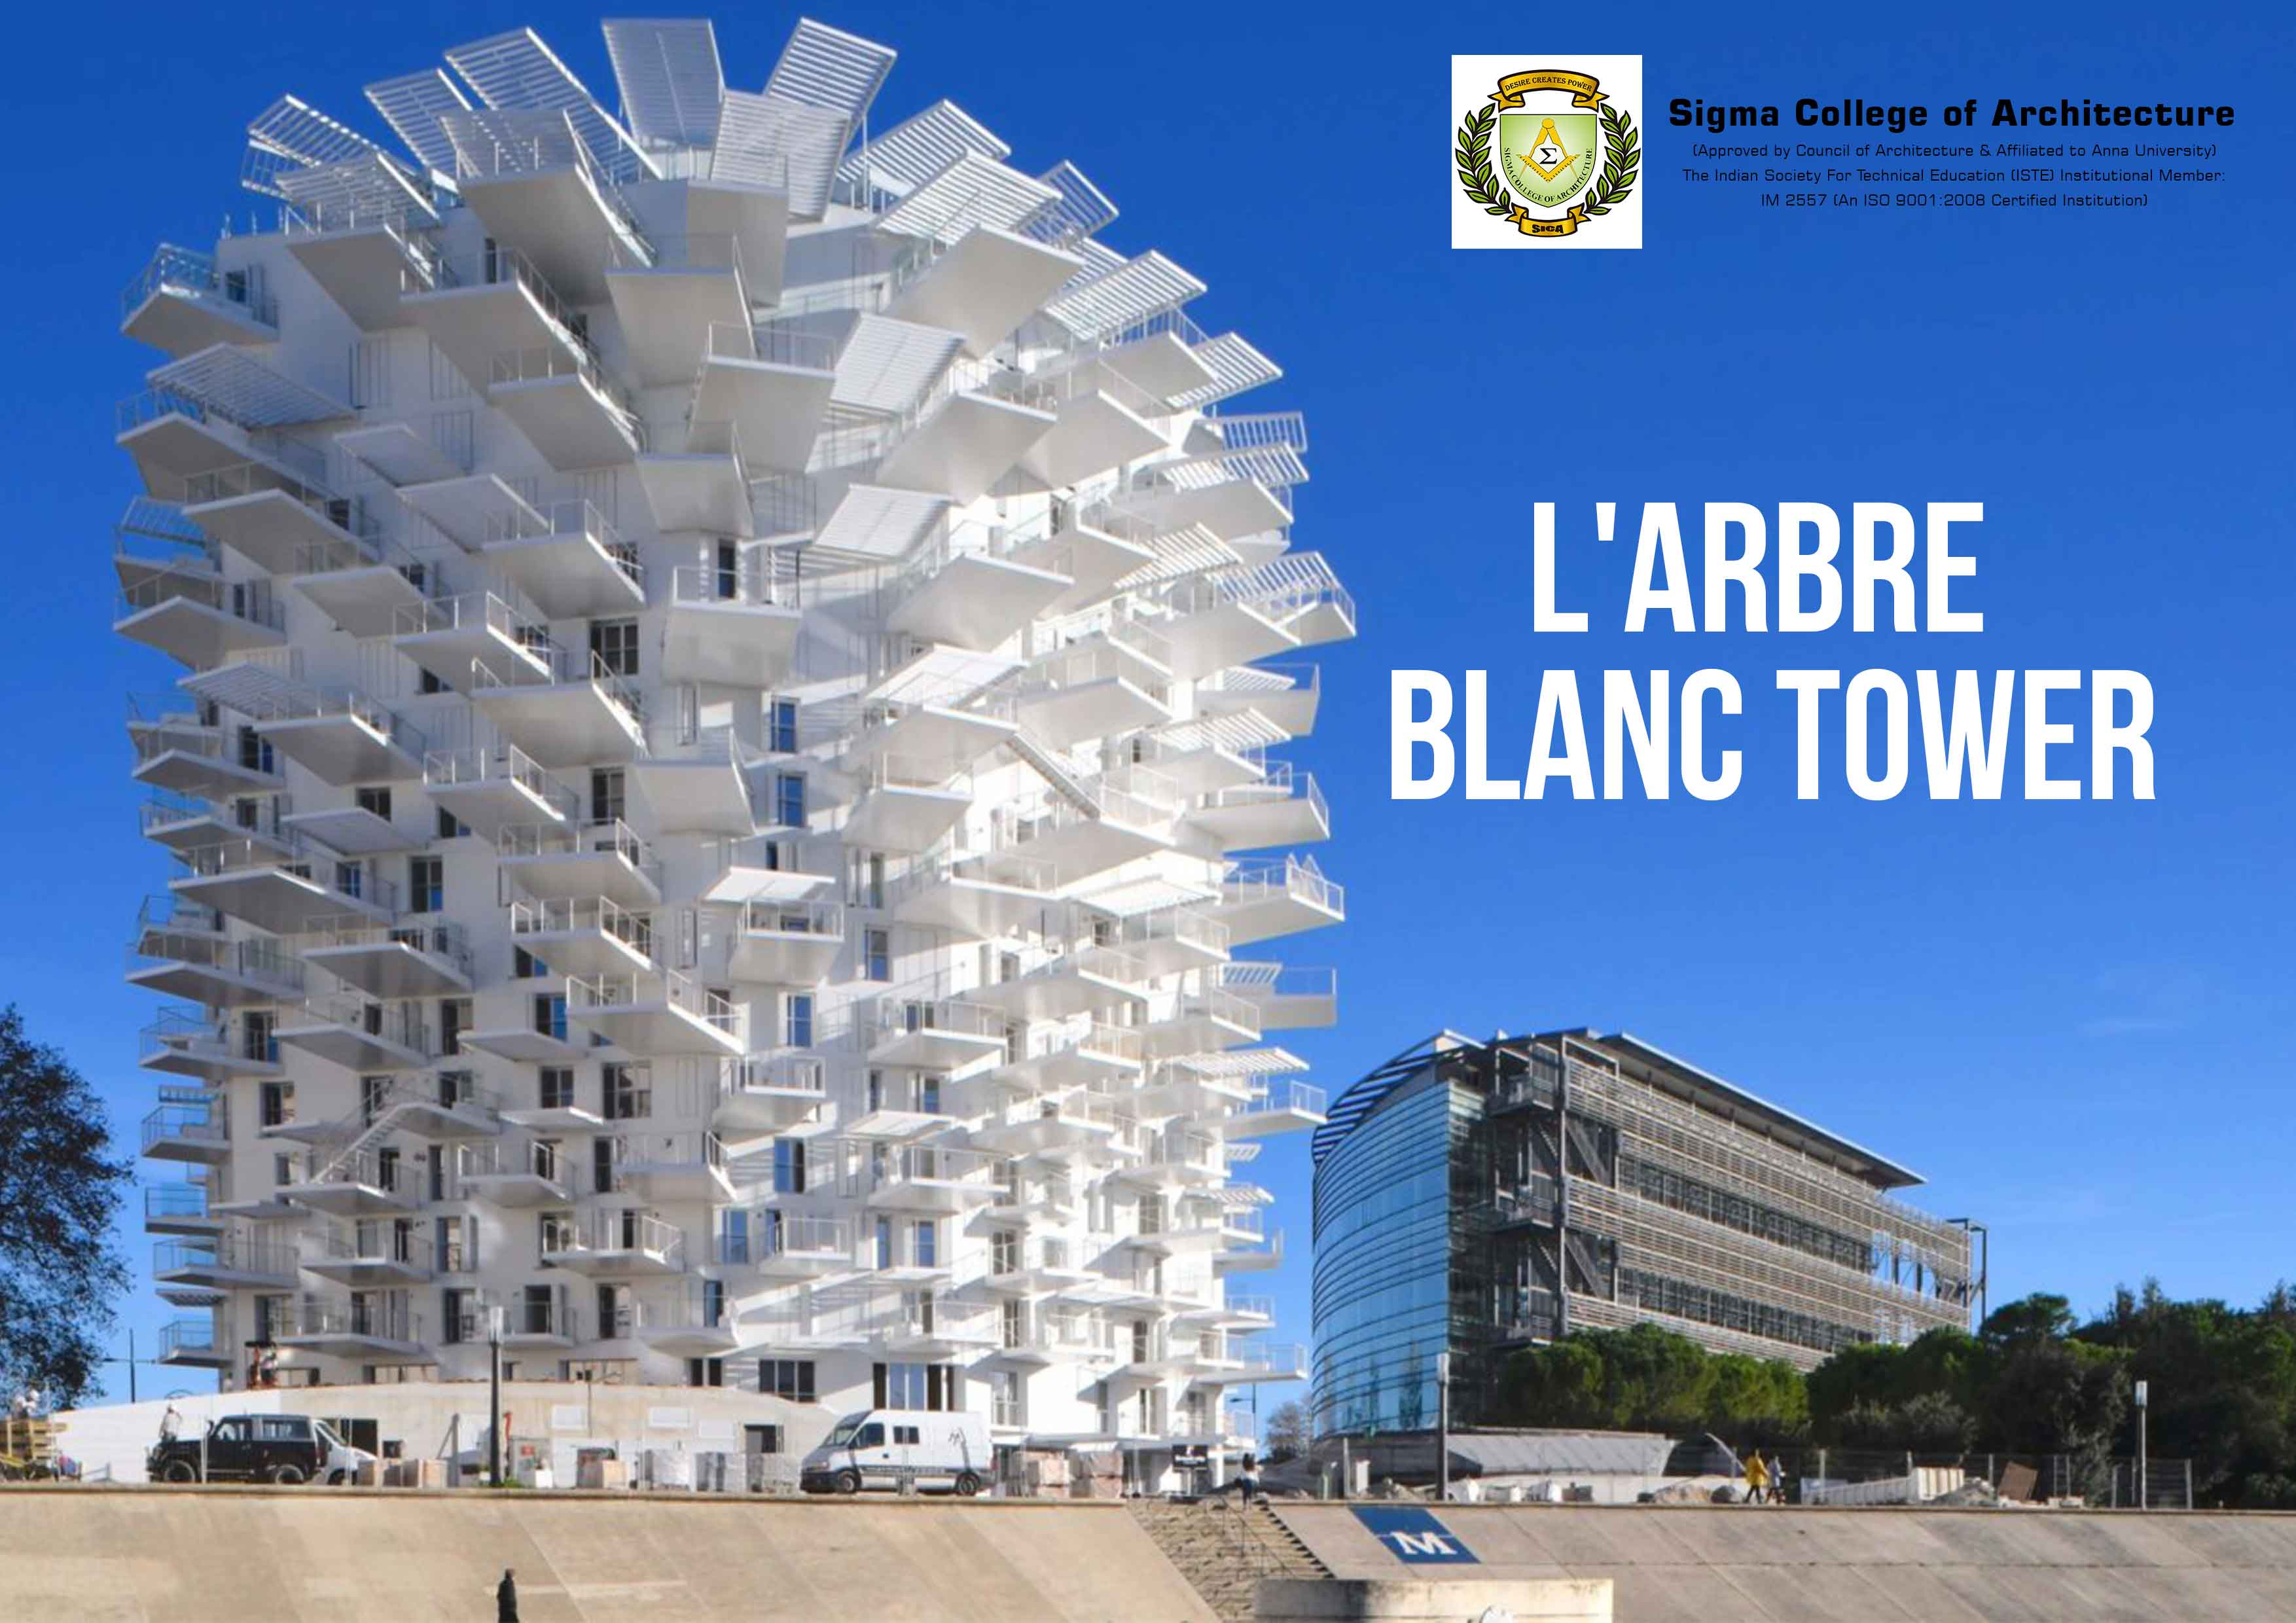 L'Arbre Blanc Tower